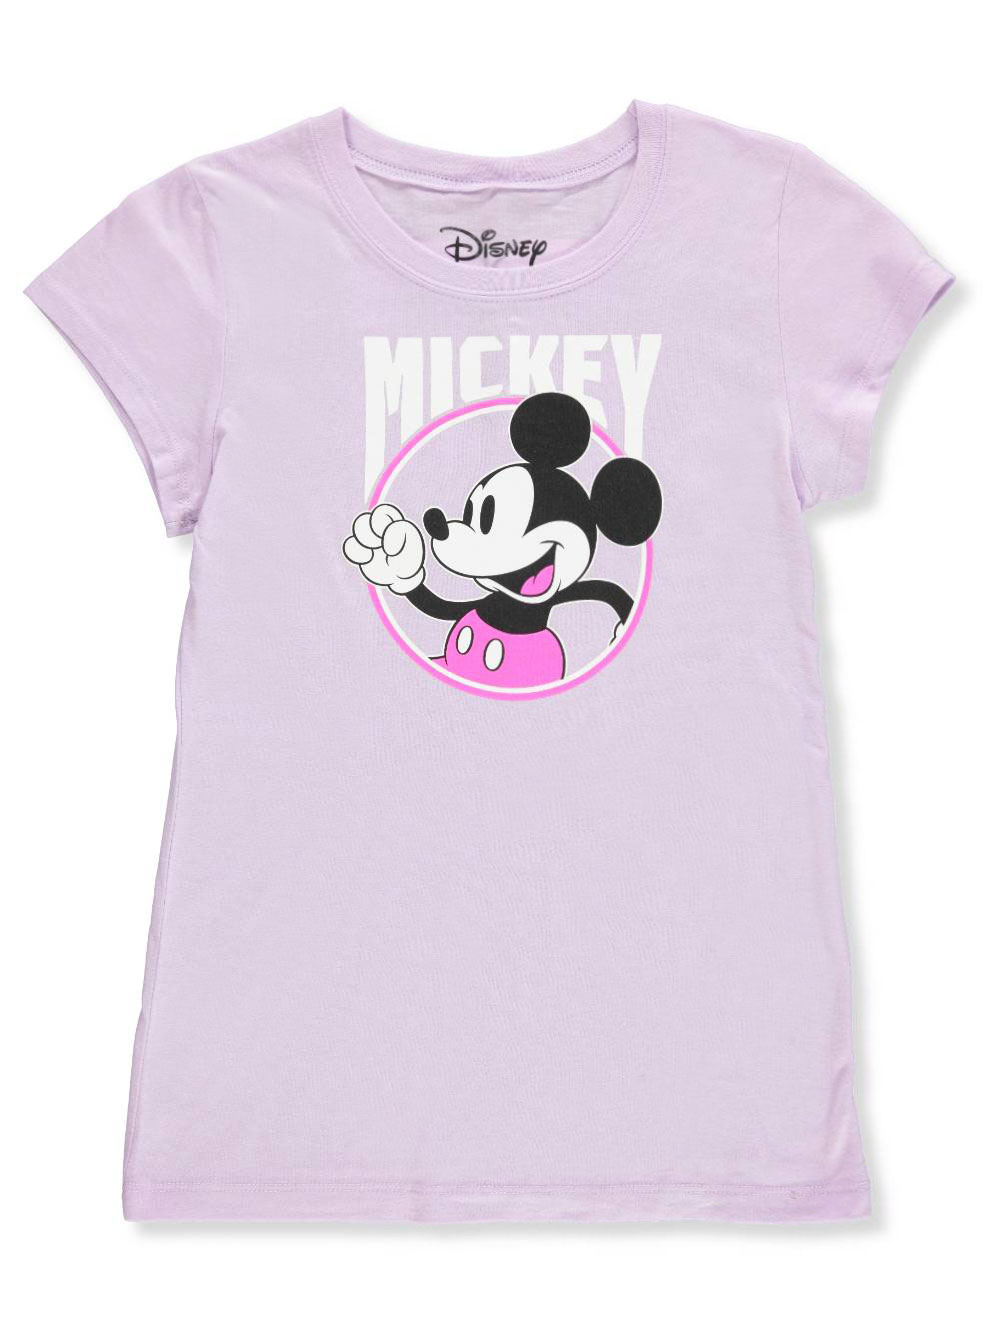 Disney Mickey Mouse Girls' T-Shirt